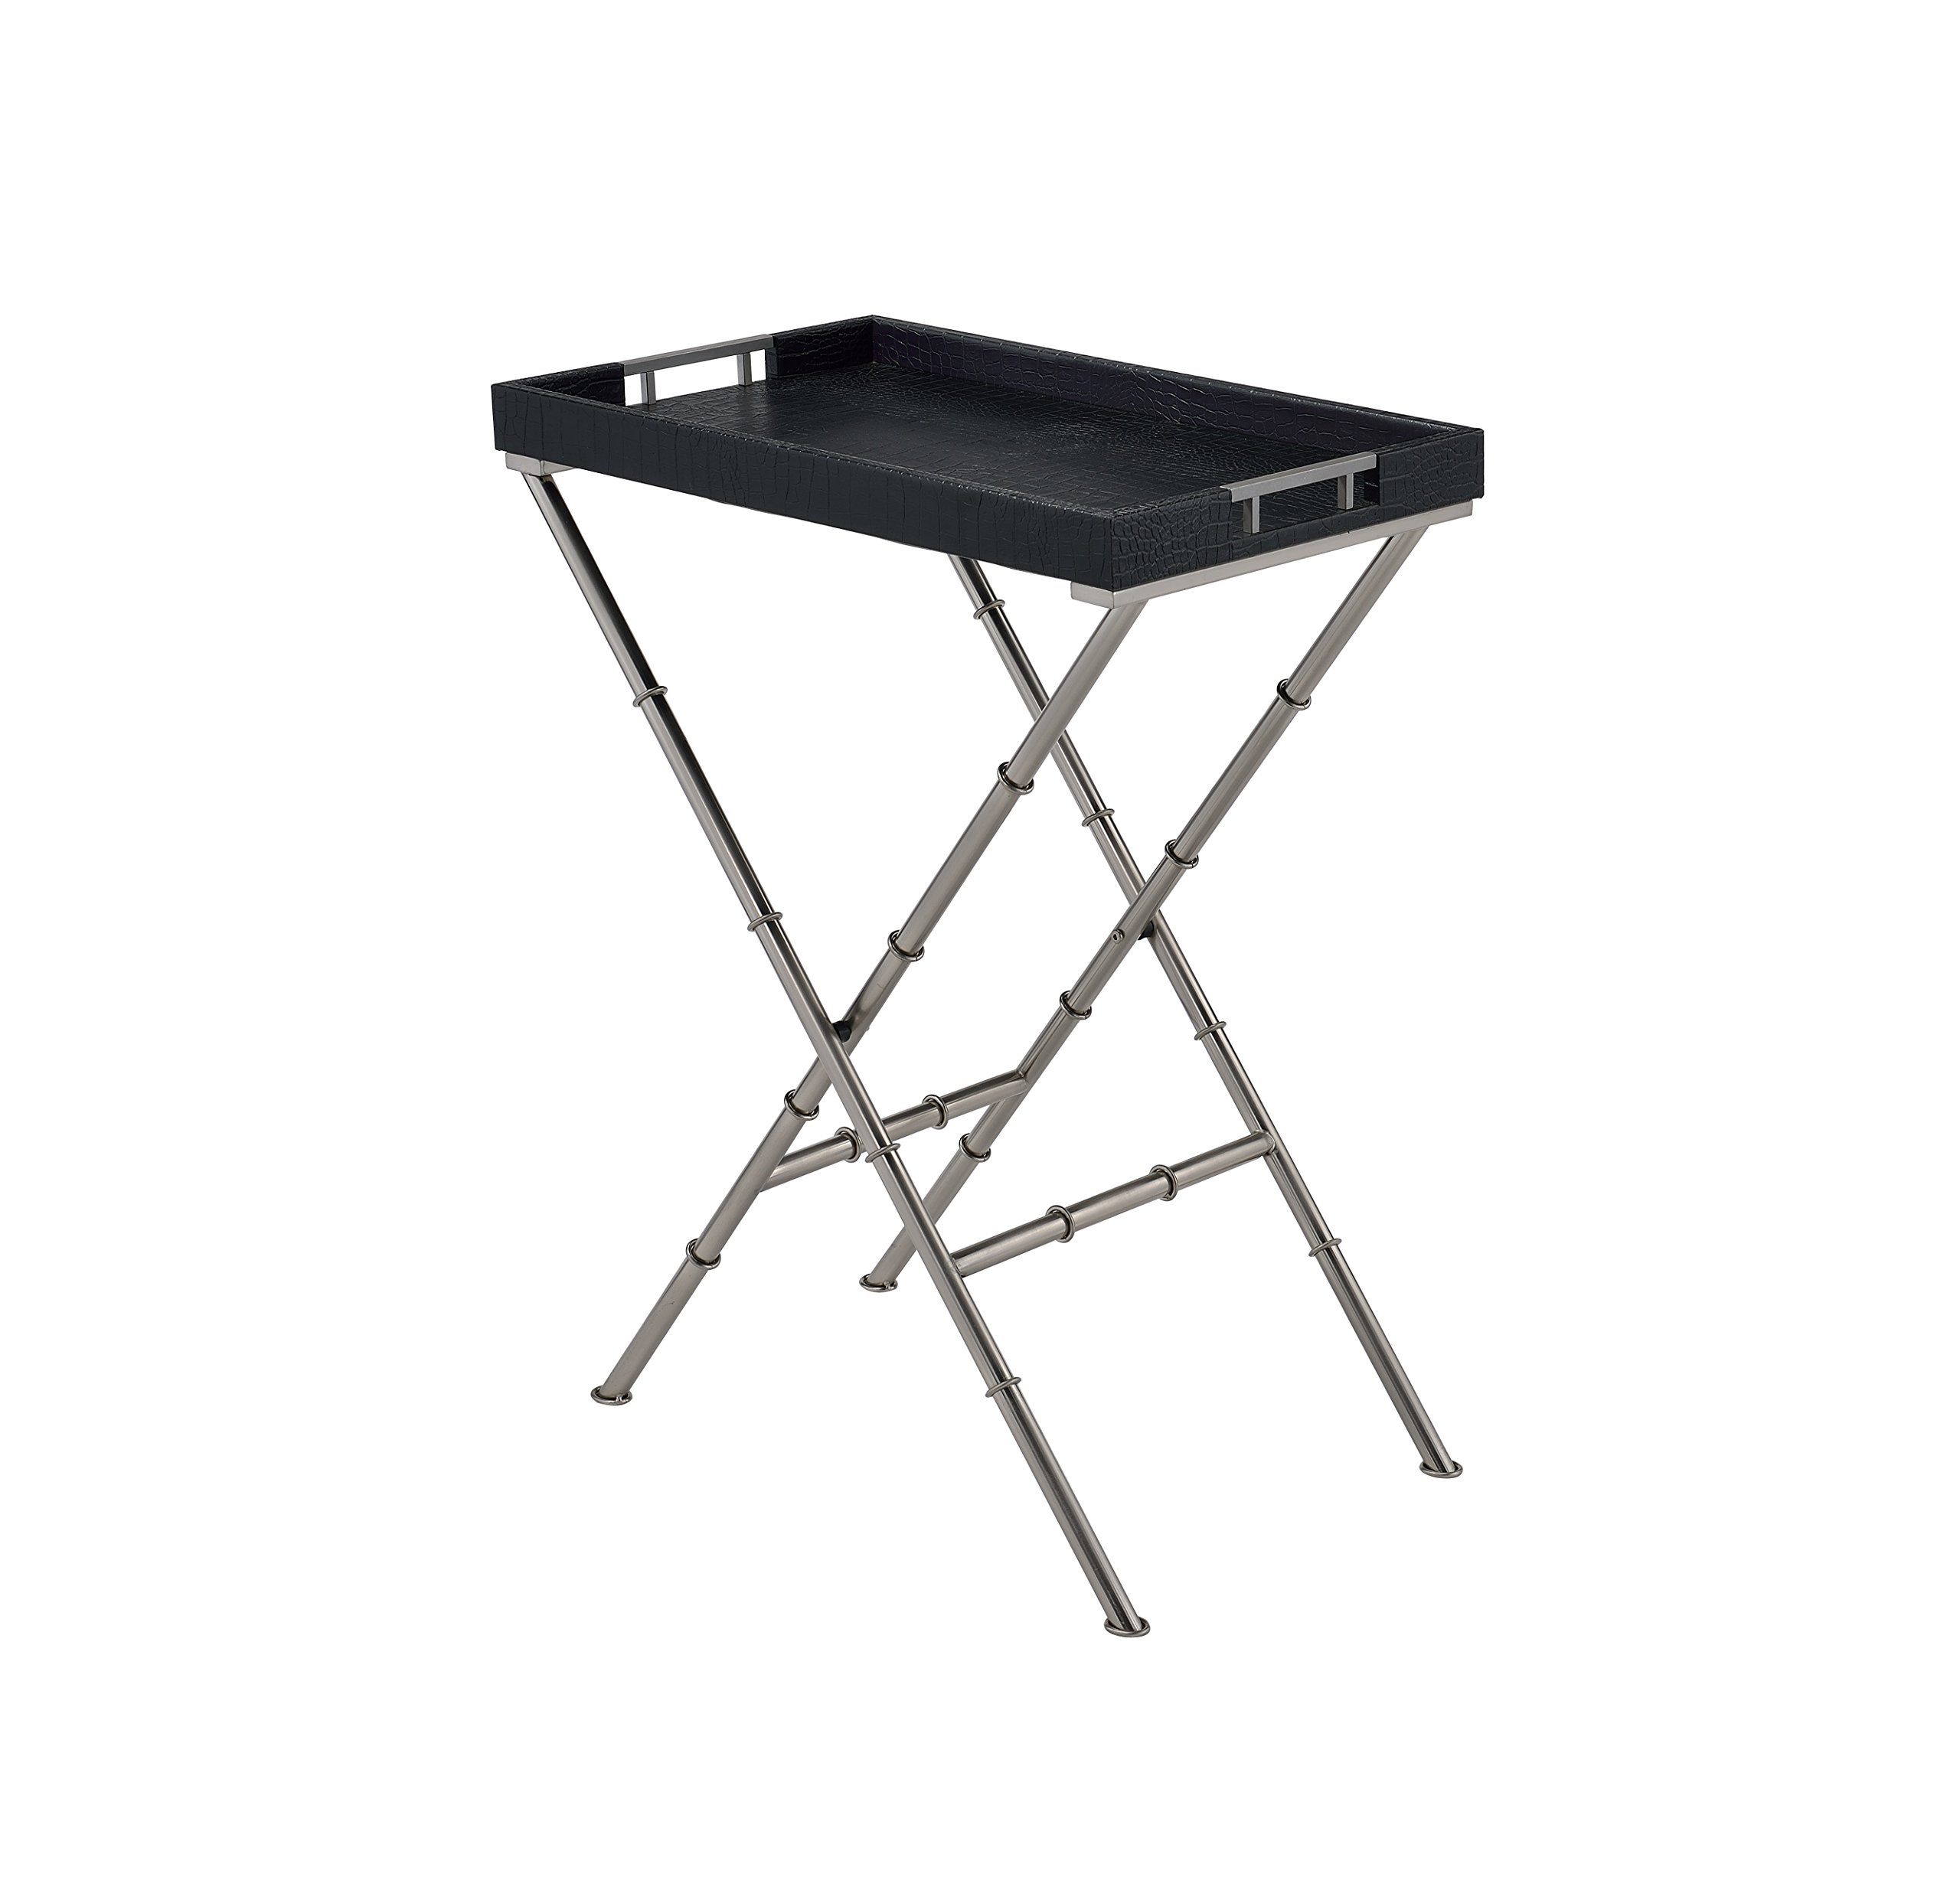 ComfortScape Rectangular Serving Tray Table, Black Croc by ComfortScape